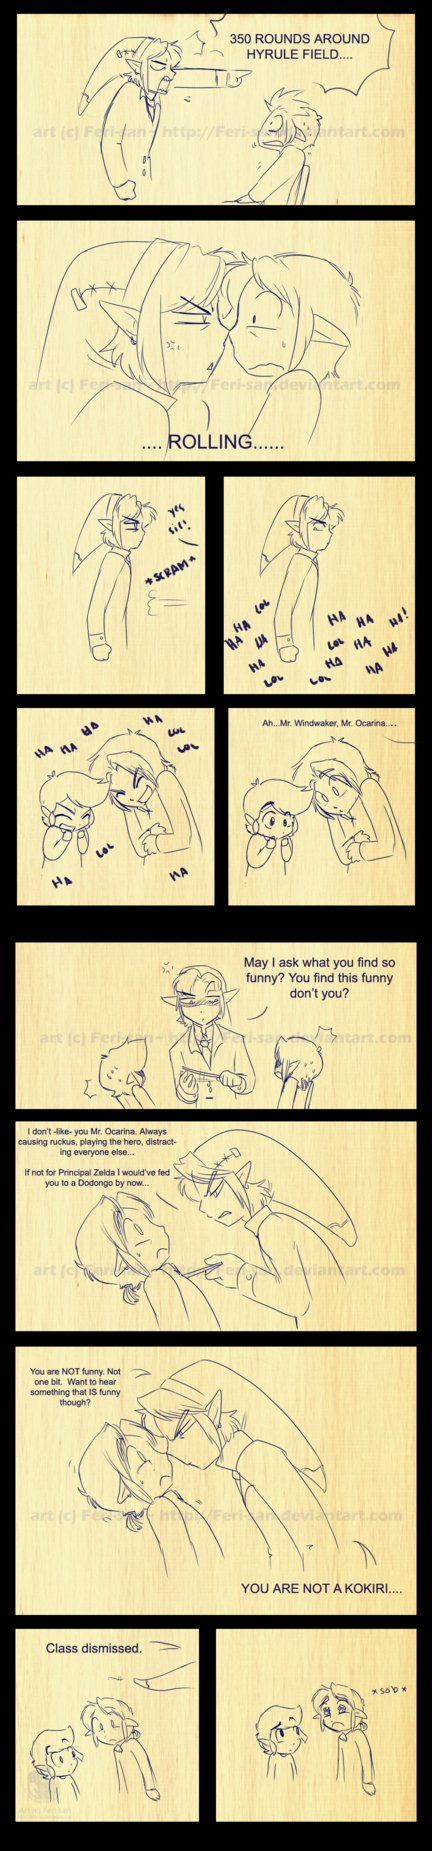 LoZ: Mr. Twilight 2 by Ferisae on deviantART ( Mr. Twilight doesn't like people playing in his class. BEHAVE. or he will emotionally assault you.)